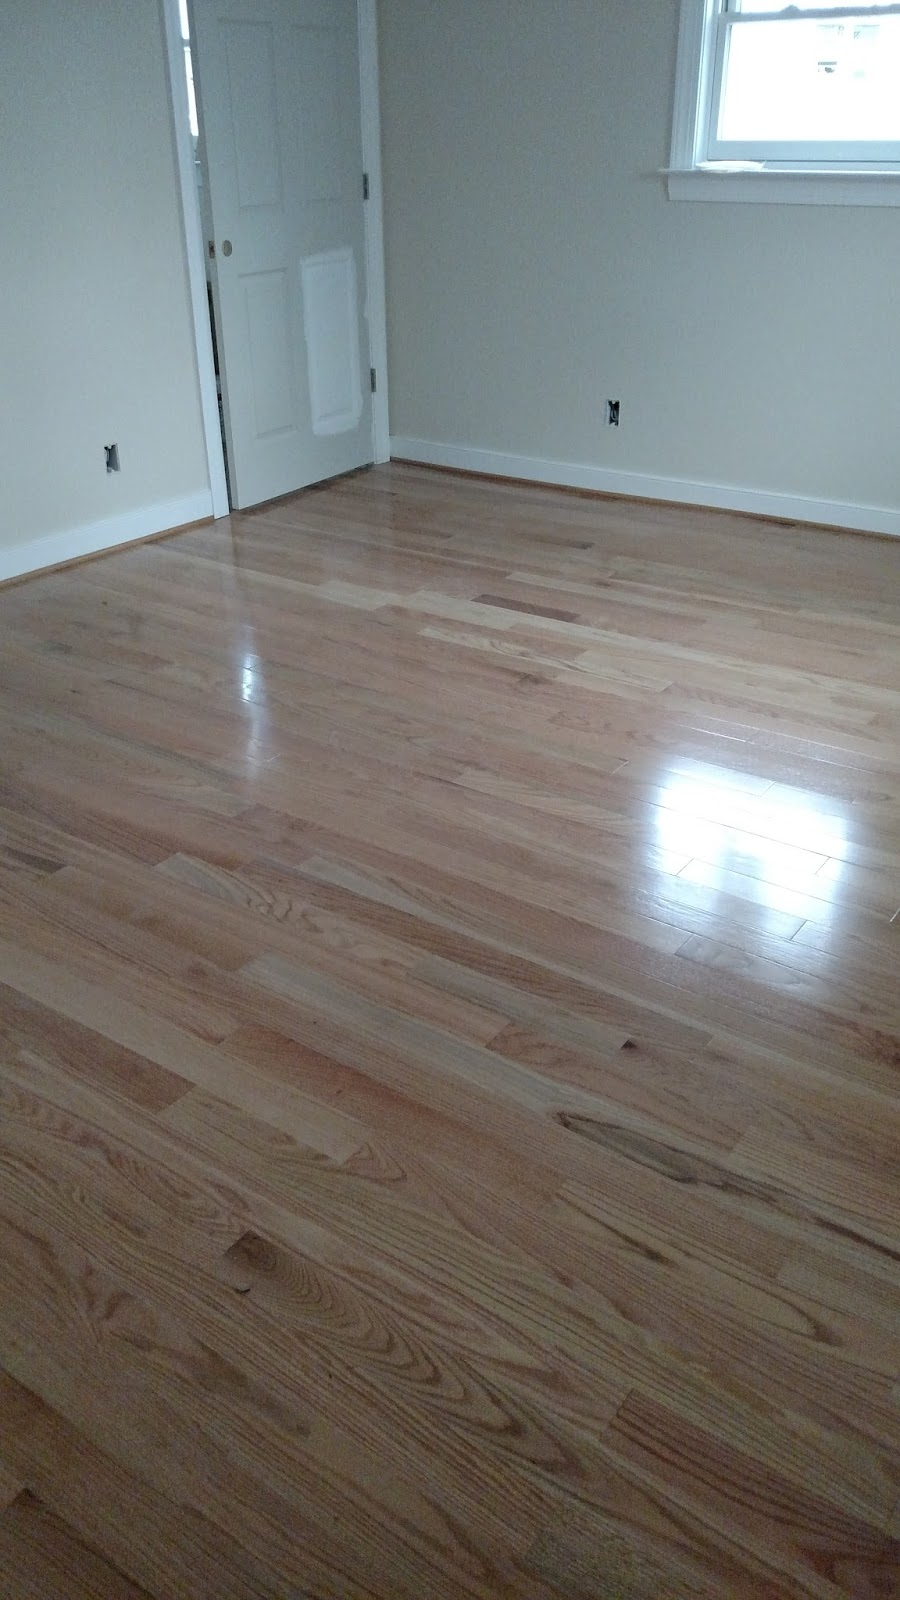 Century Hardwood Flooring century hardwood flooring hardwood flooring With Our Experienced Flooring Installation Technicians A Lifetime Installation Warranty Our Client Is Sure To Enjoy These Products For Many Years To Come